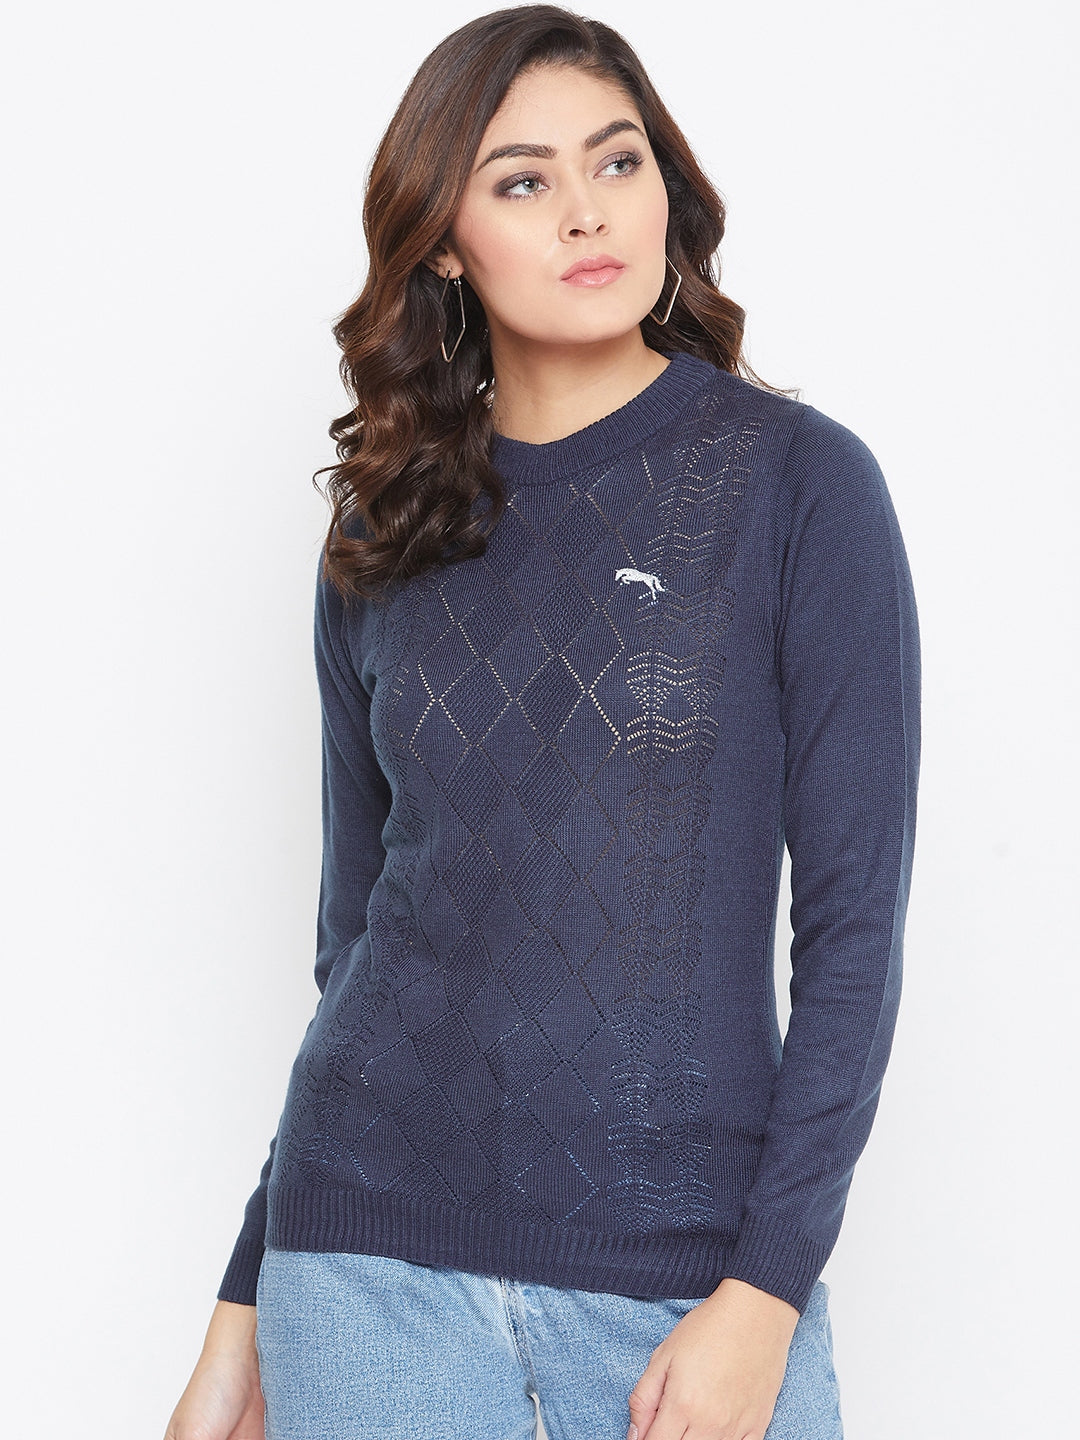 JUMP USA Women Navy Blue Self Design Sweater